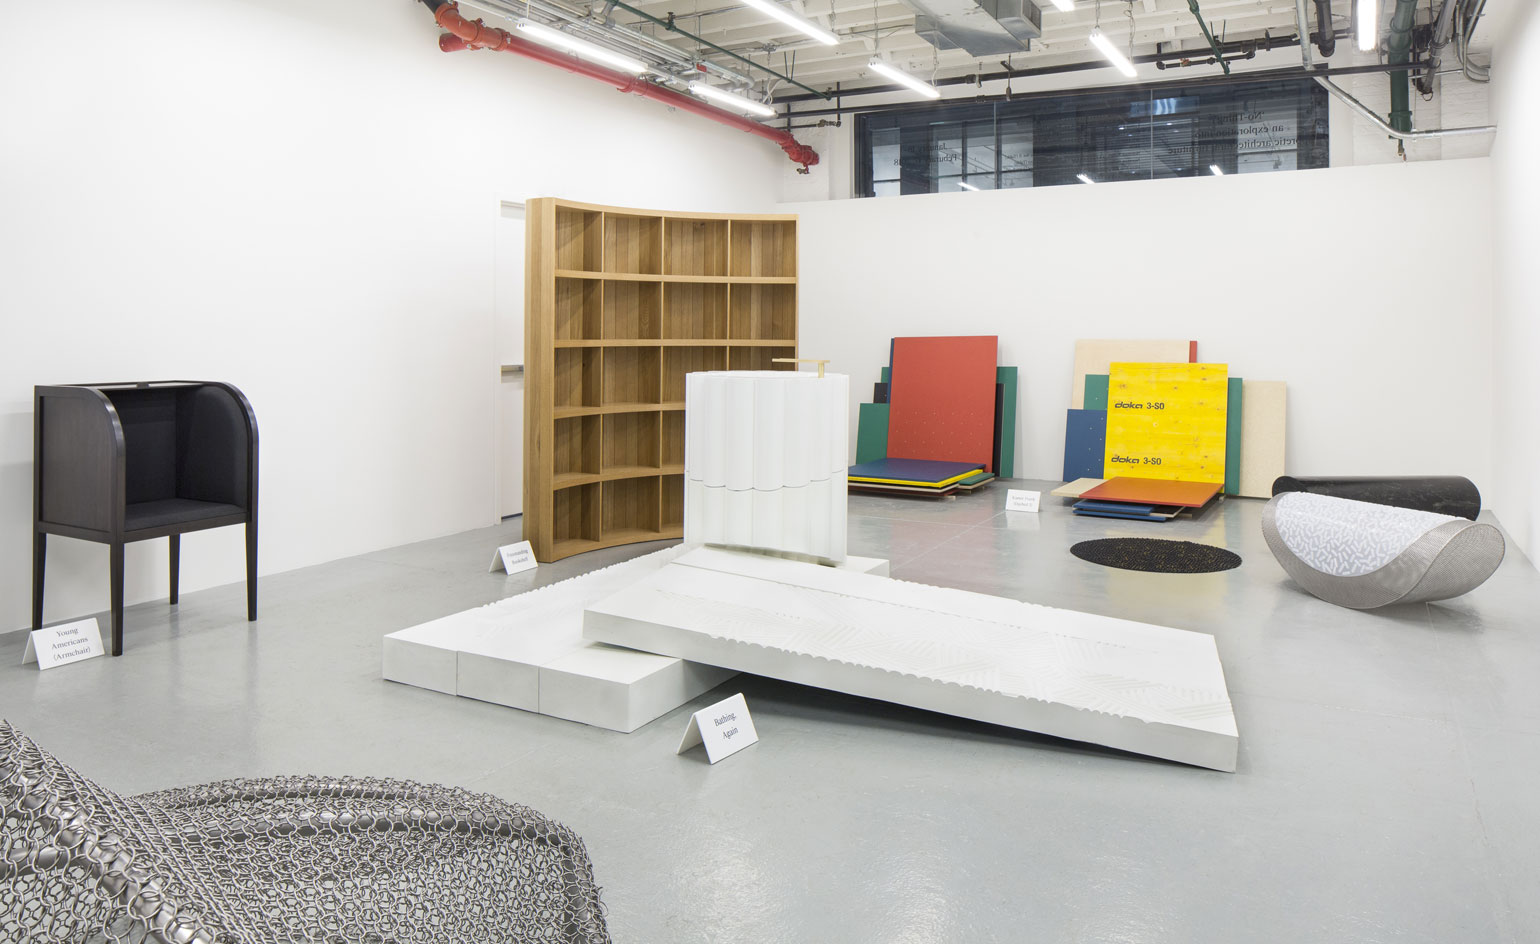 architectural furniture design. To Curate This Latest Show That Sees The Owner Of Now Closed Chamber Gallery Commission New Works From Nine Emerging Architectural Practices Furniture Design